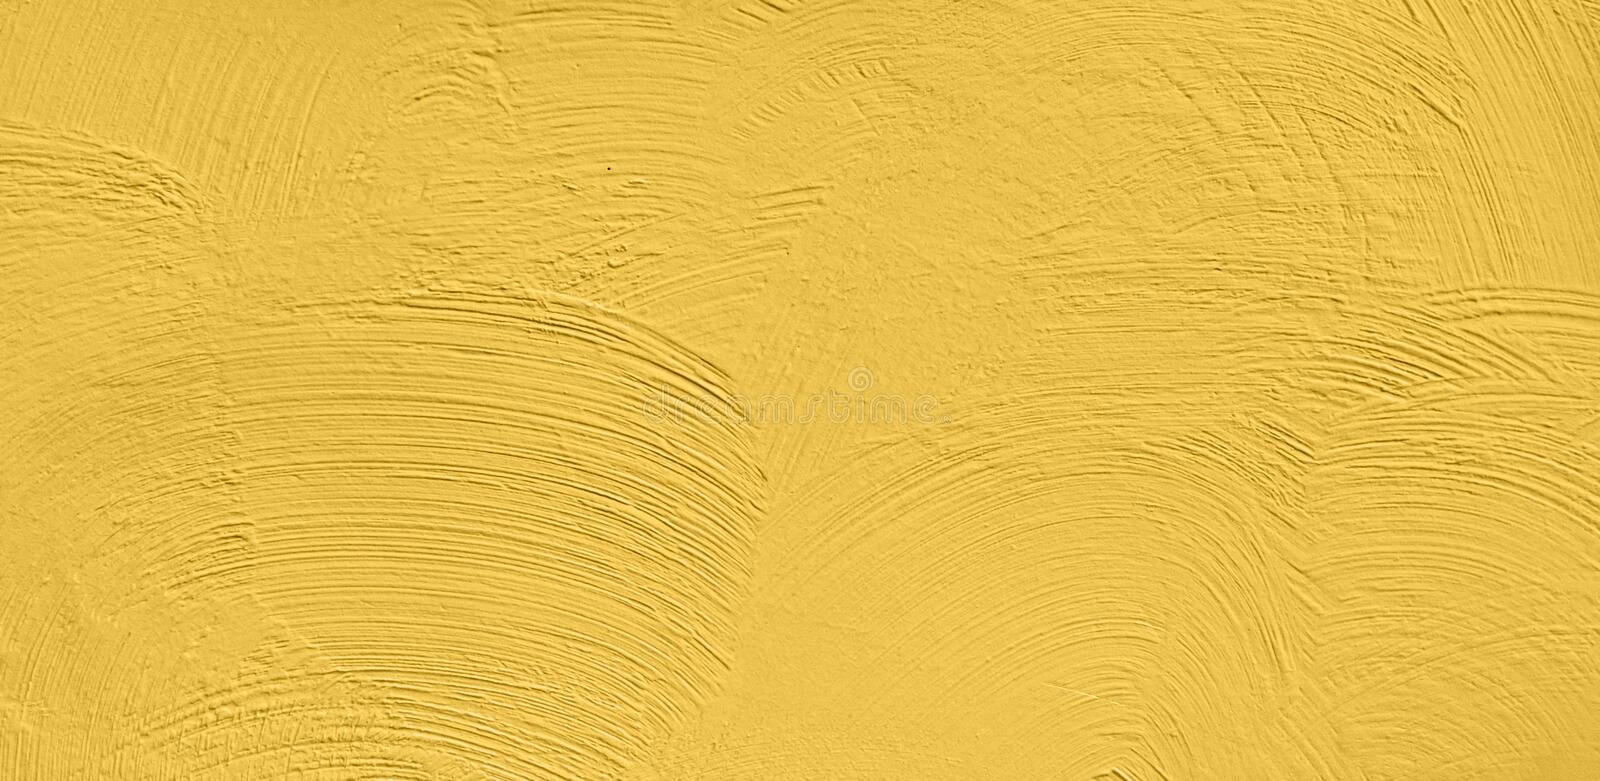 Abstract Grunge Decorative Yellow Stucco Wall Background. Beautiful Abstract Grunge Decorative Yellow Stucco Wall Background. Wide Angle Art Rough Stylized stock images